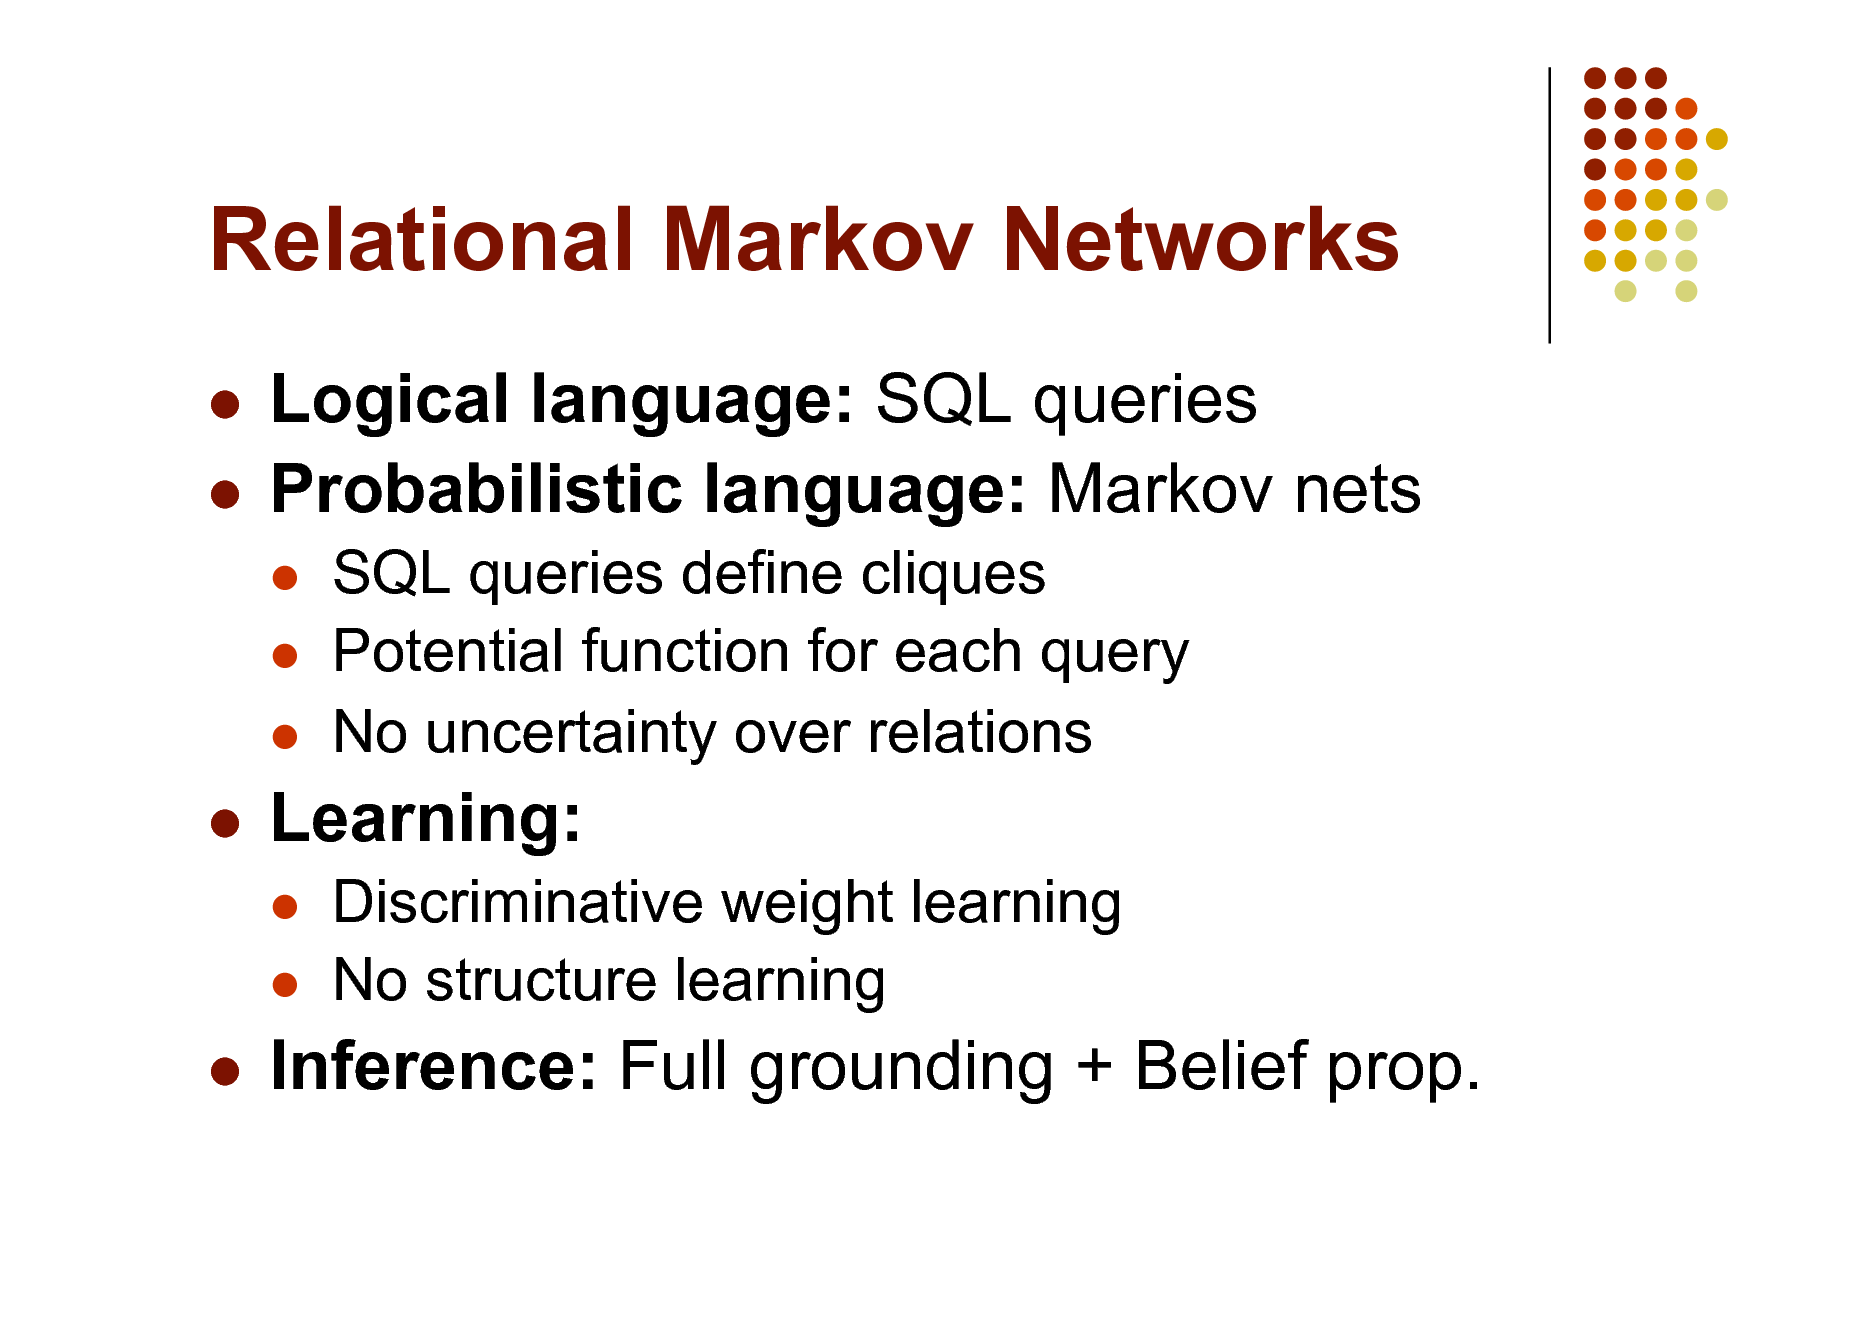 Slide: Relational Markov Networks Logical language: SQL queries  Probabilistic language: Markov nets      SQL queries define cliques Potential function for each query No uncertainty over relations Discriminative weight learning No structure learning    Learning:      Inference: Full grounding + Belief prop.